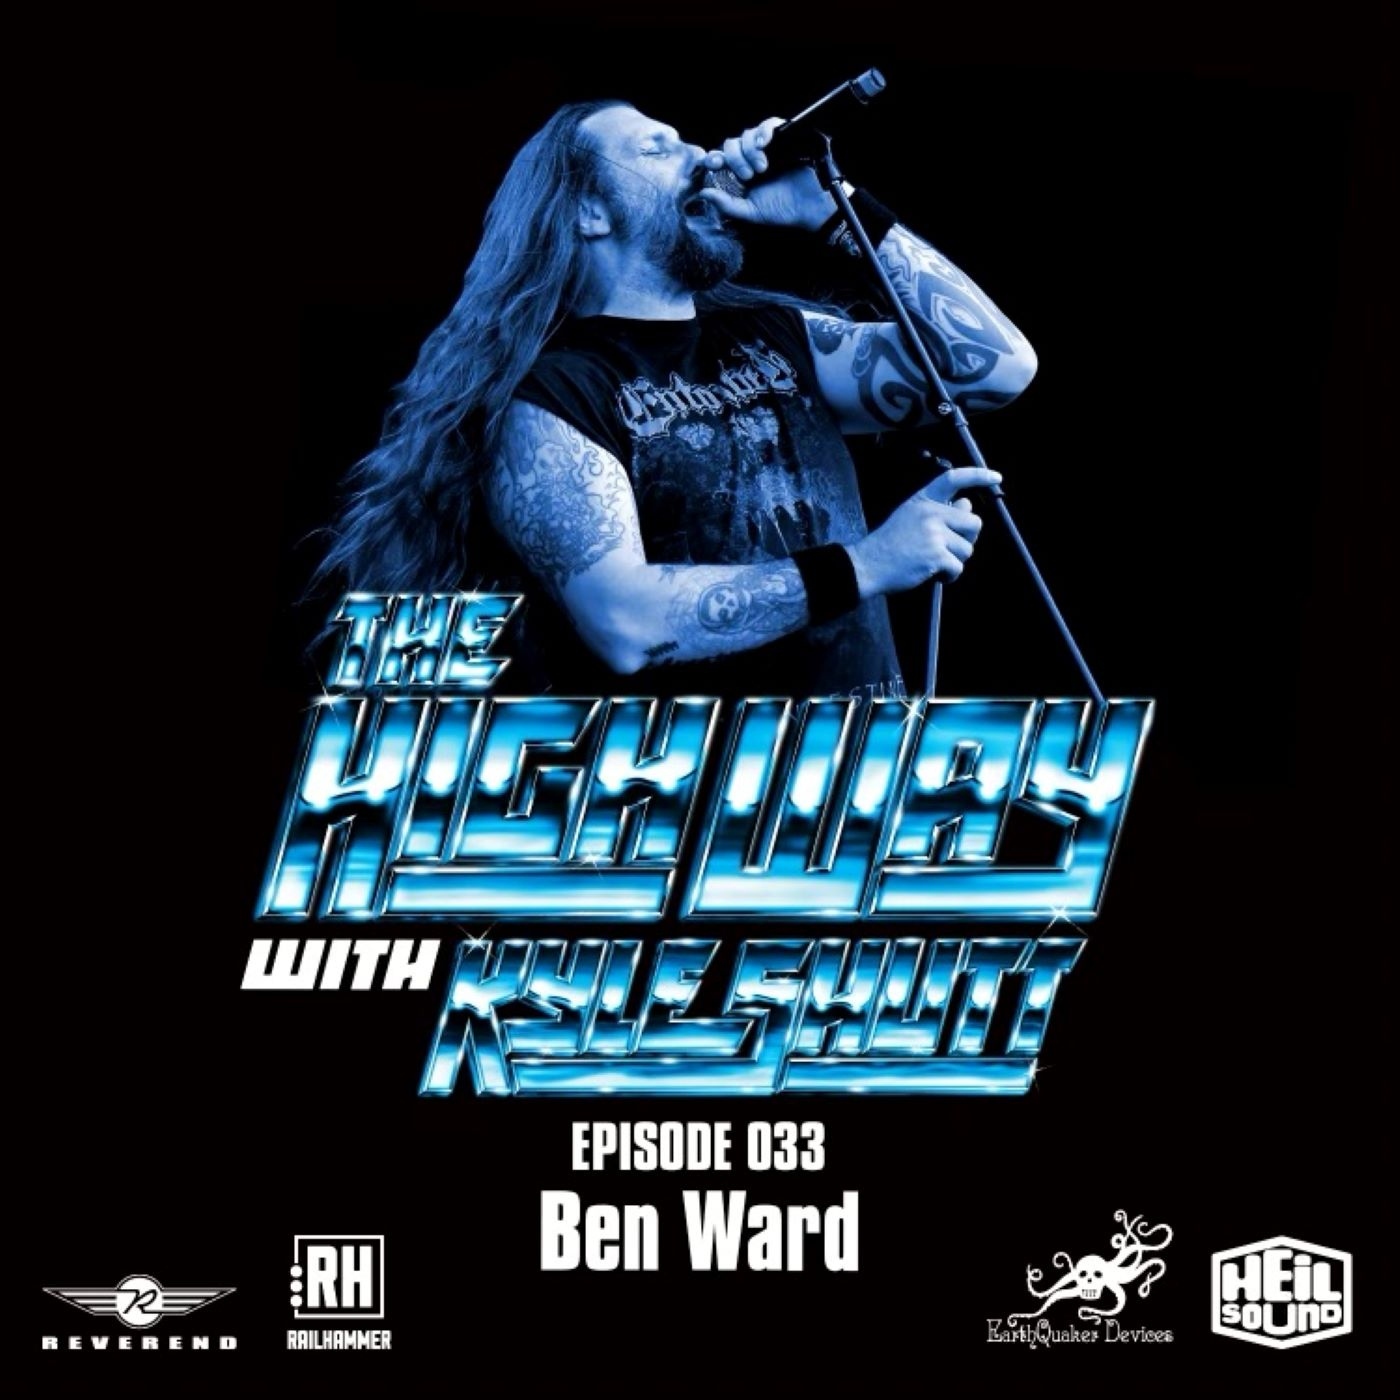 Artwork for podcast The High Way with Kyle Shutt